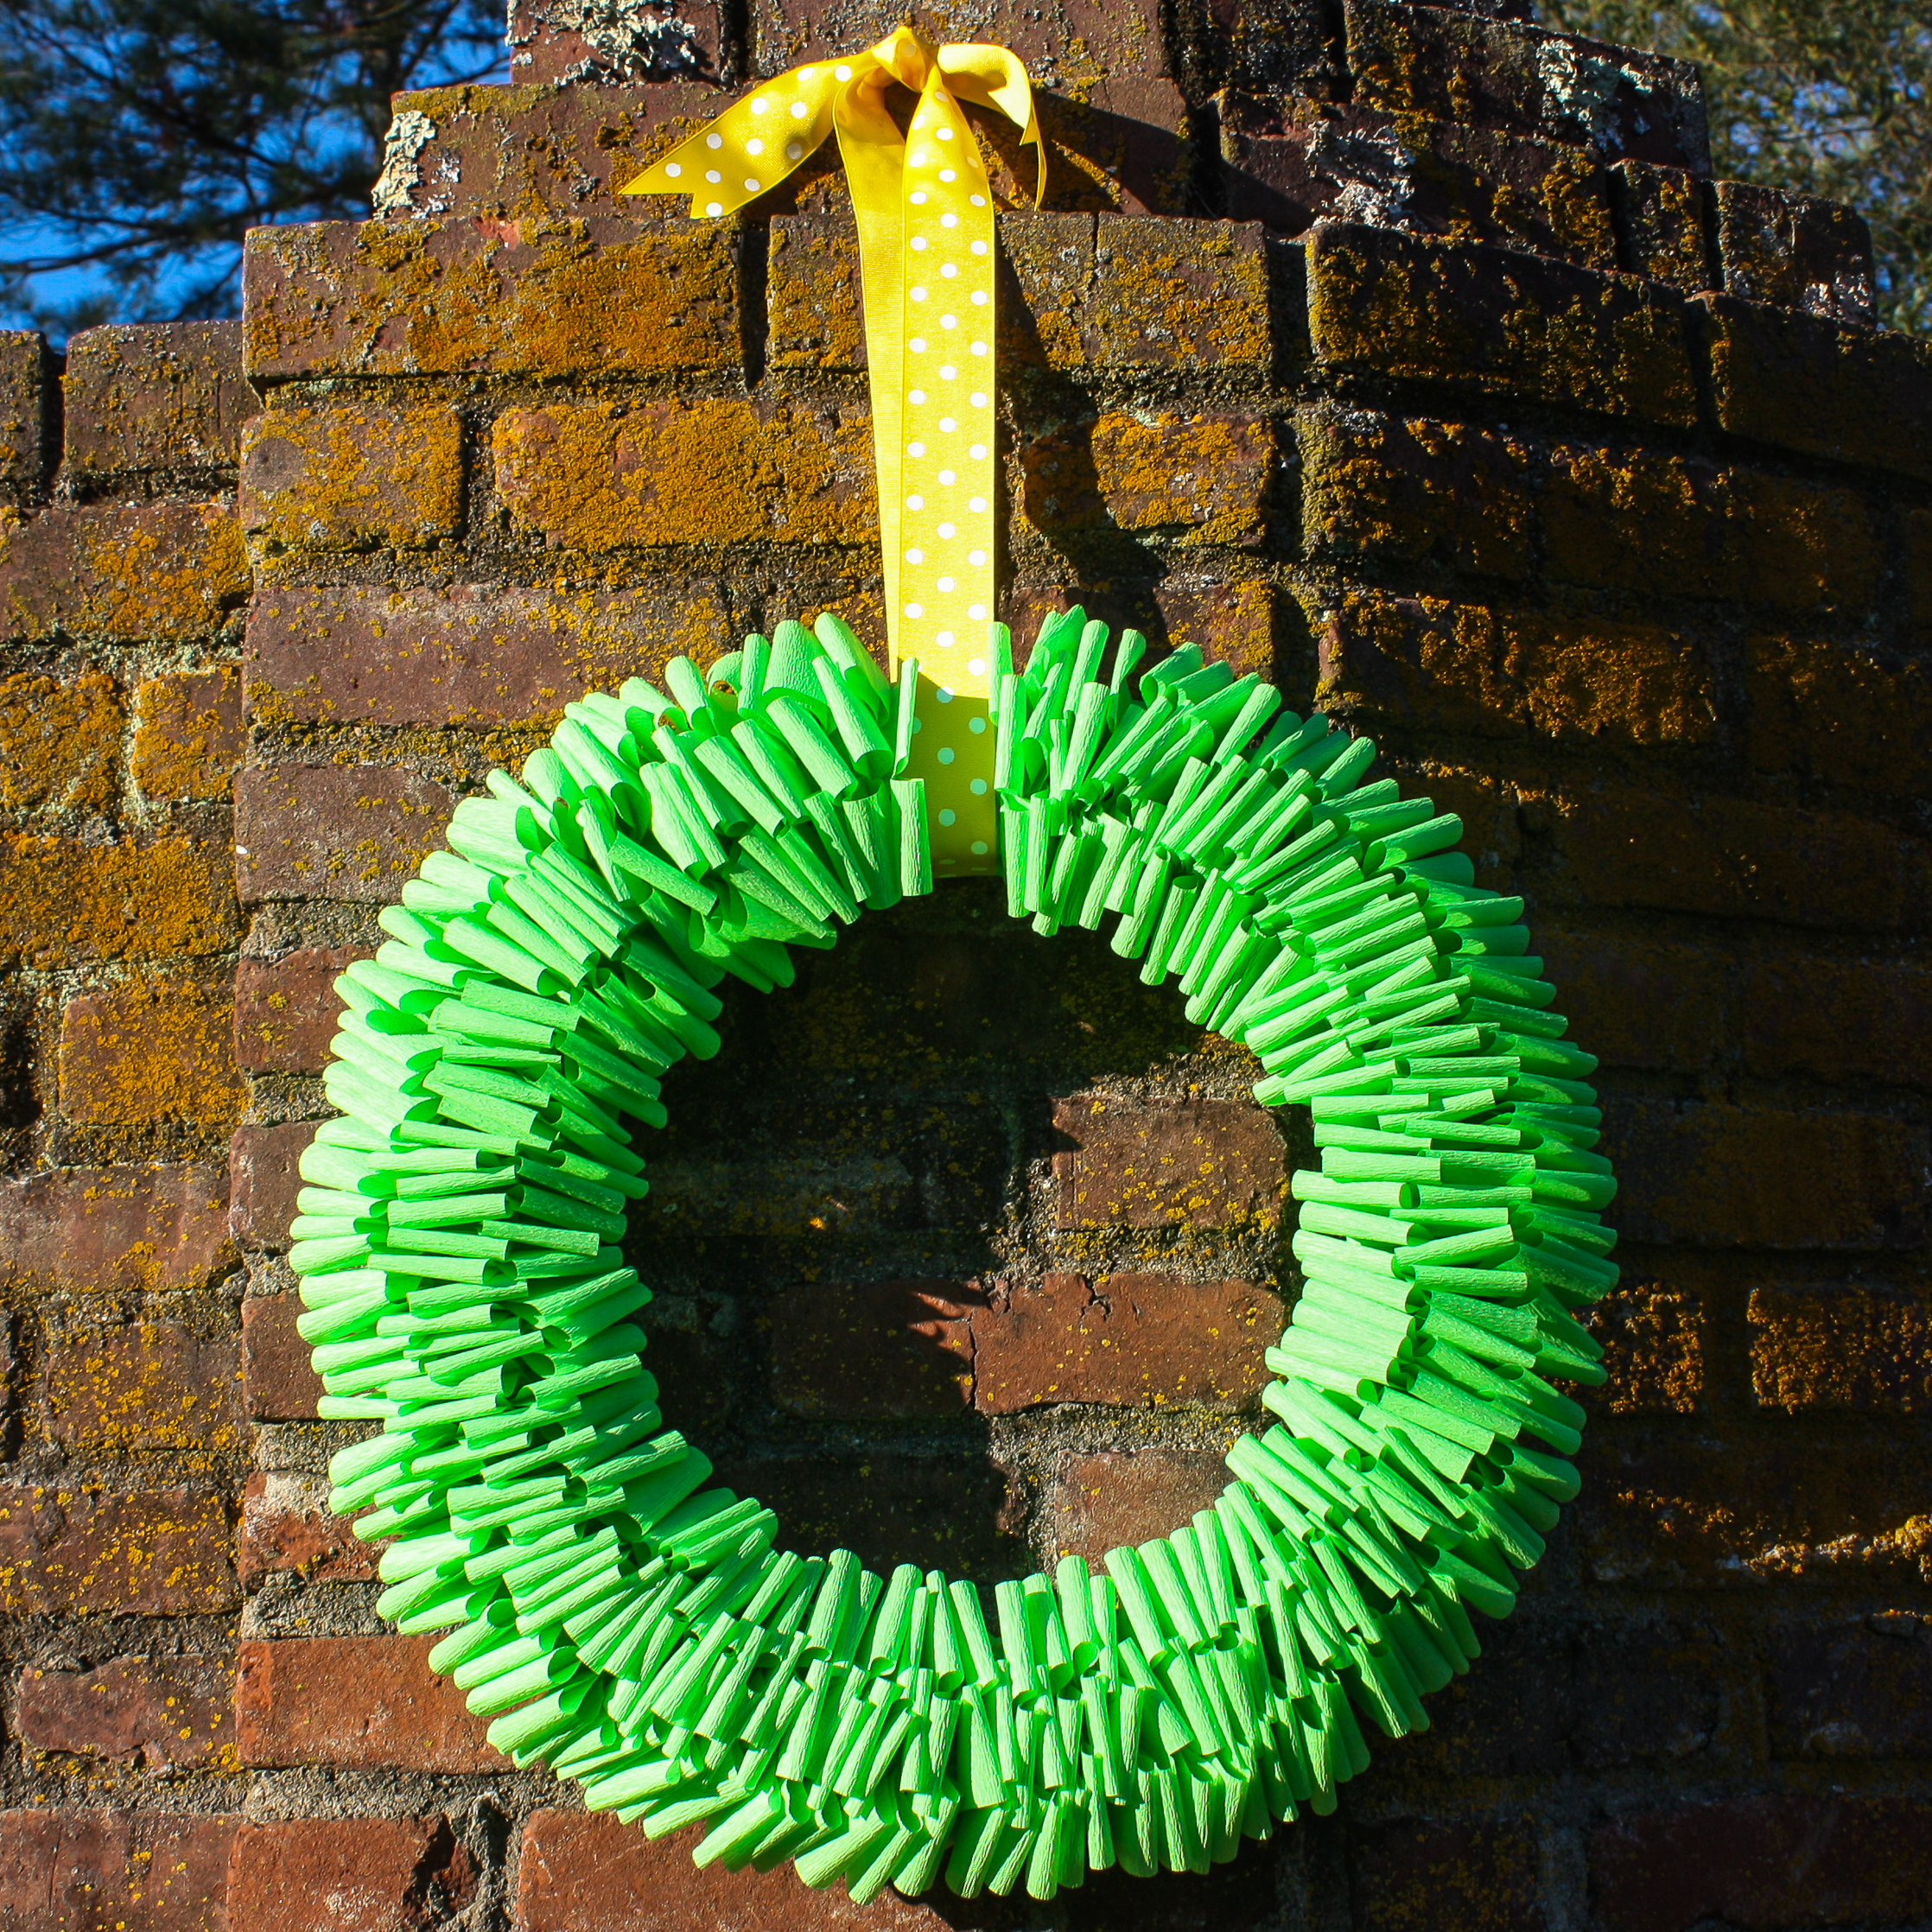 Make a wreath using crepe paper, sewing pins, and a styrofoam wreath form.